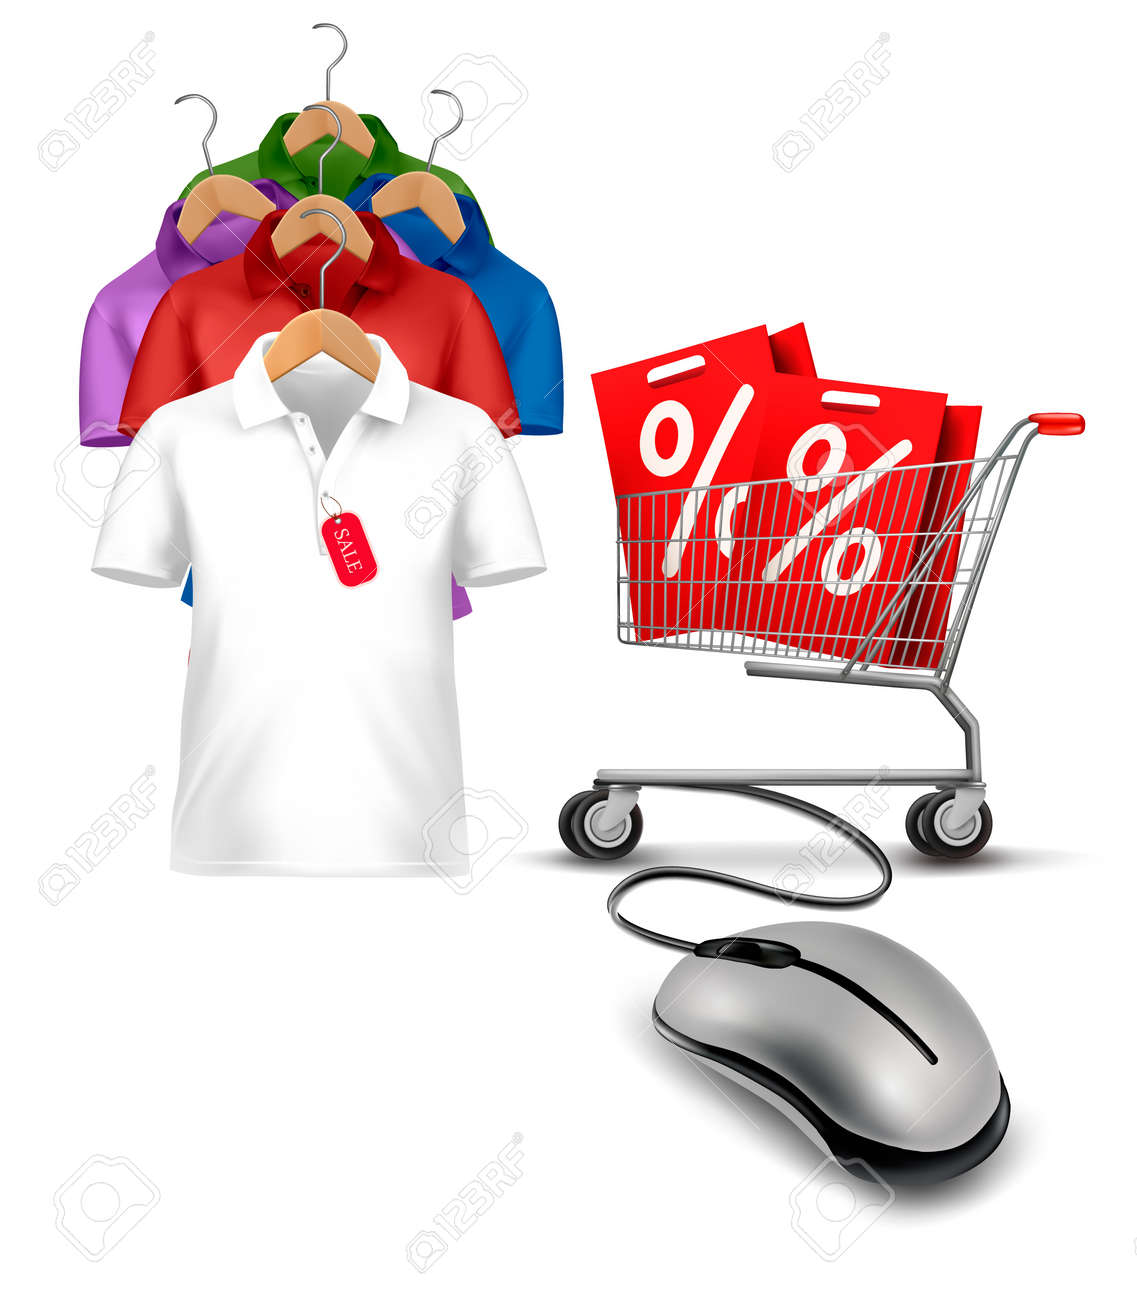 Different hangers with shirts and a computer mouse attached to a shopping cart. Concept of e-shopping and sale. Vector. Stock Vector - 21264049